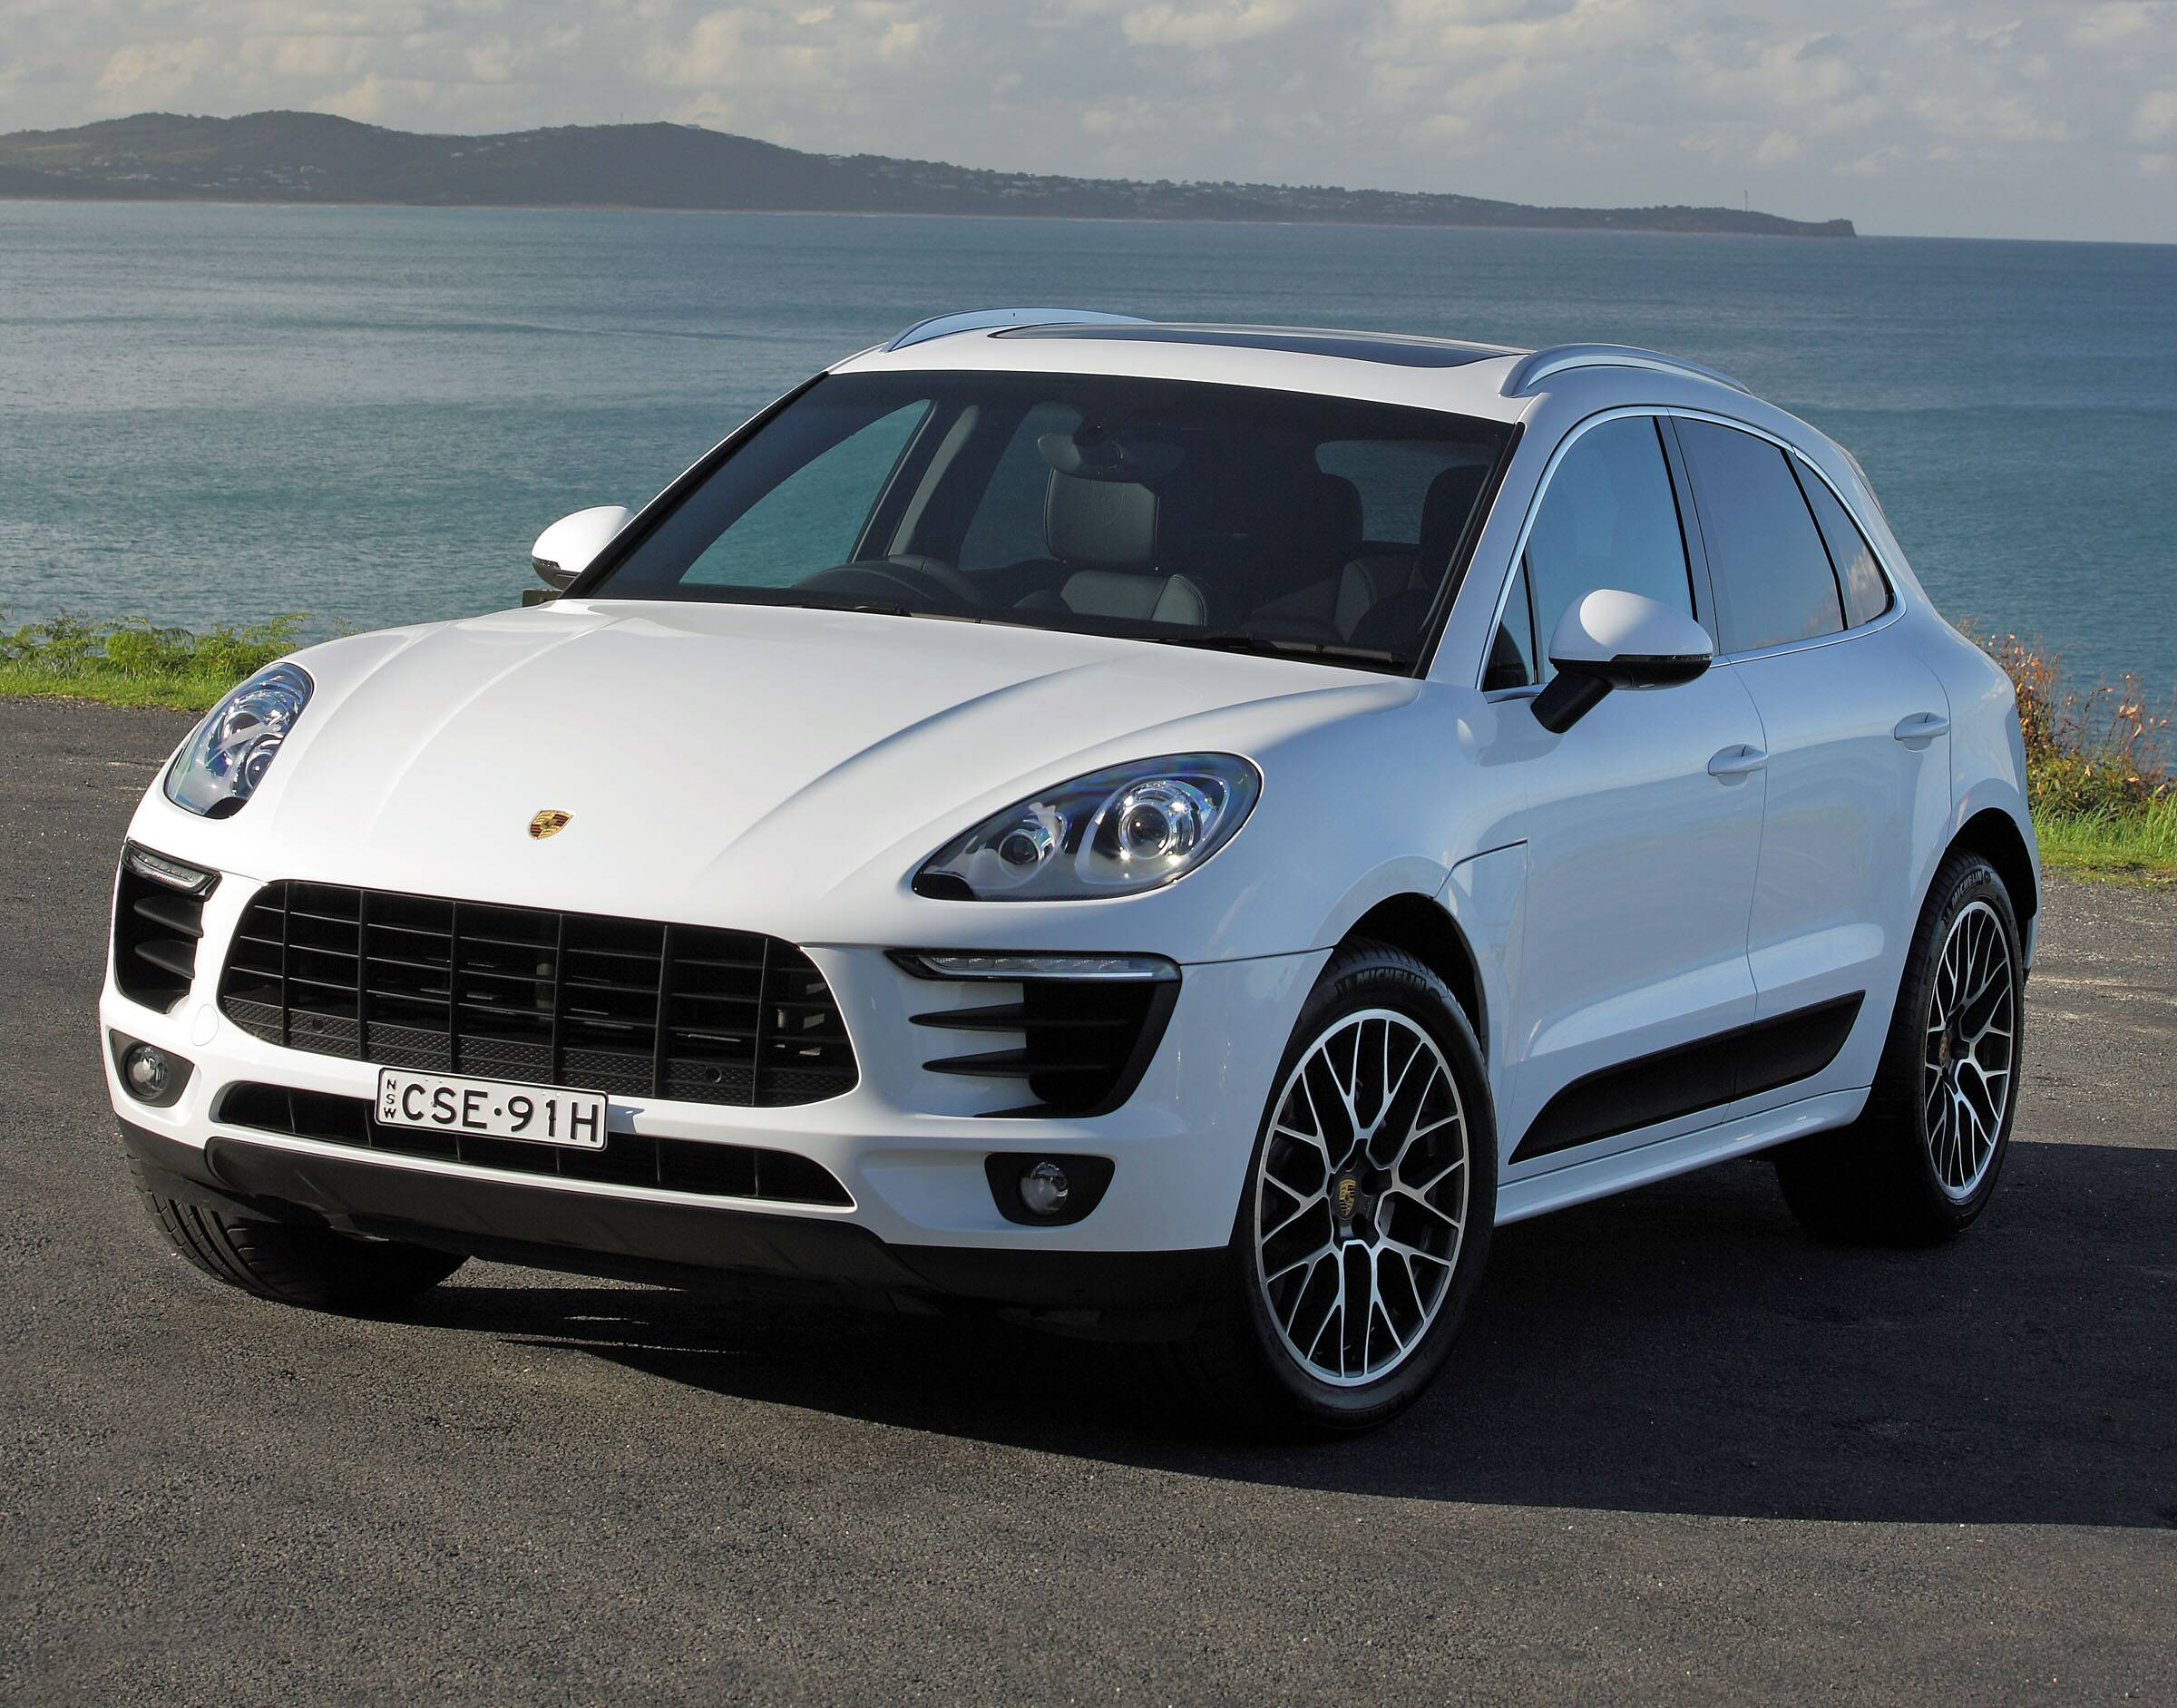 2015 porsche macan s review carsguide. Black Bedroom Furniture Sets. Home Design Ideas